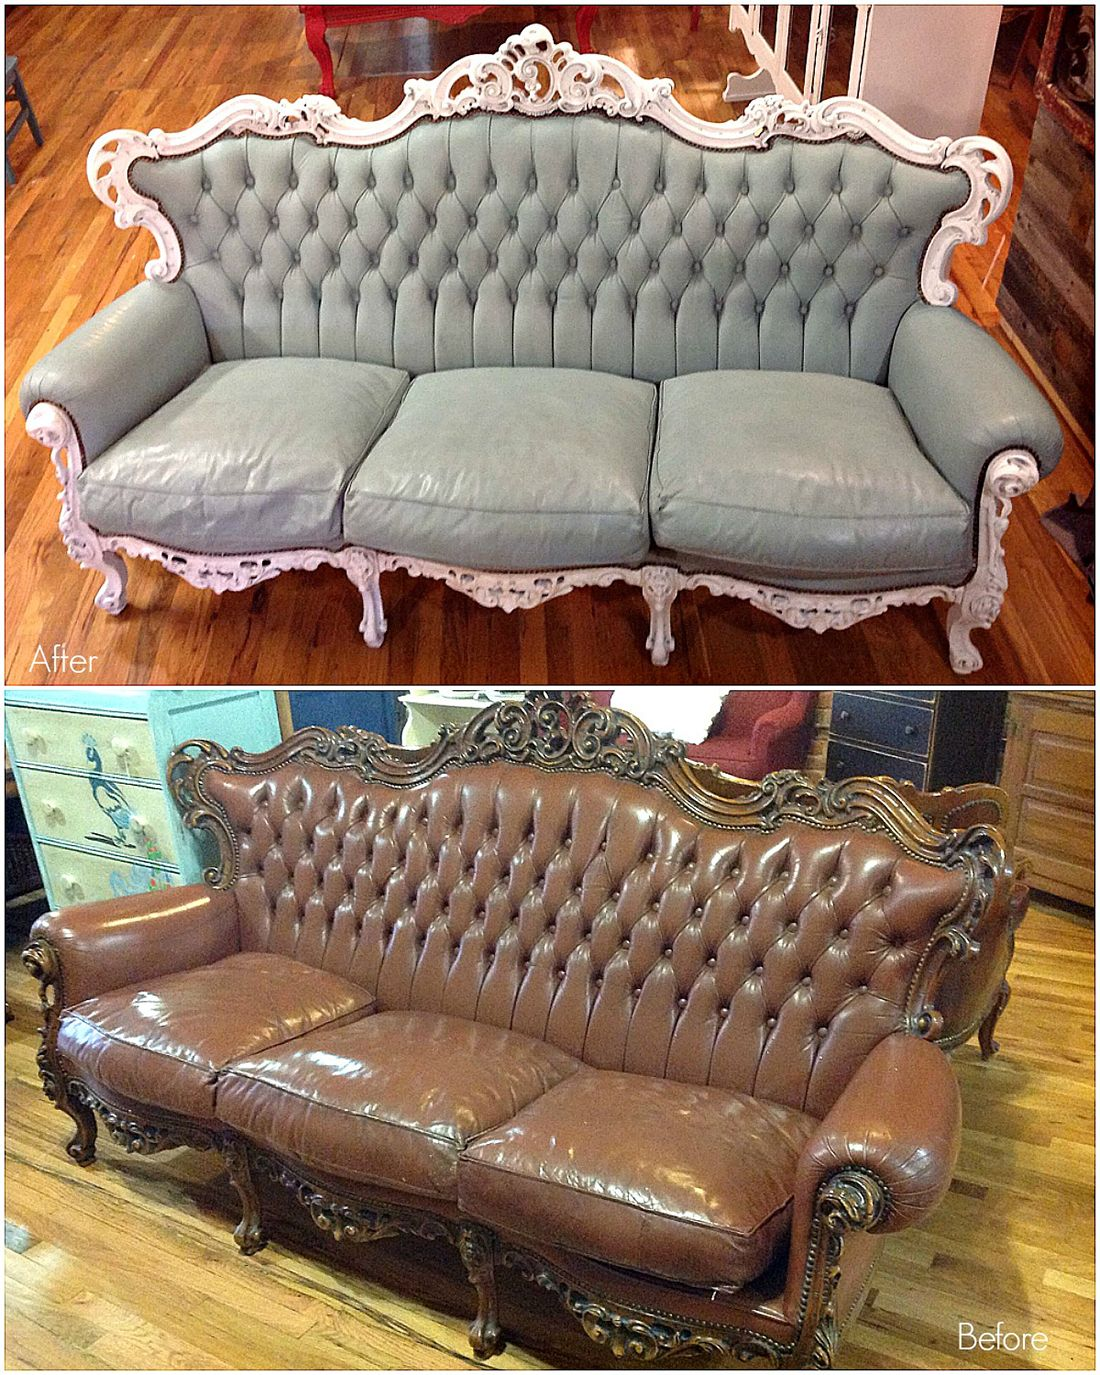 Amazing Leather Sofa Before After Chalk Paint Decorative By Annie Sloan In Duck Egg Blue For The Body And Pure White Frame Finished With